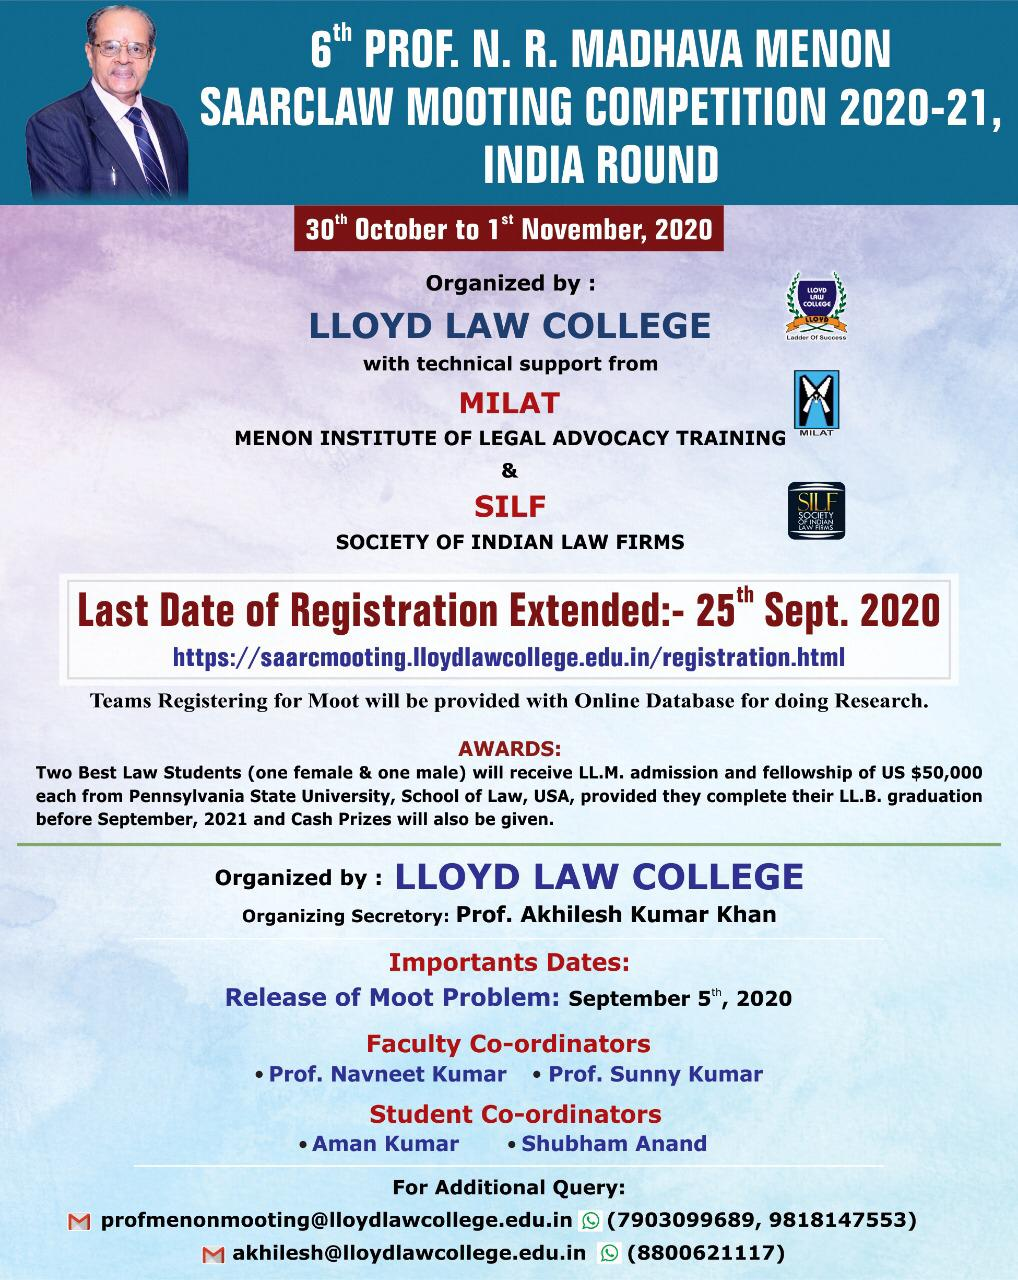 6th Prof. N. R. Madhava Menon SAARCLAW Mooting Competition